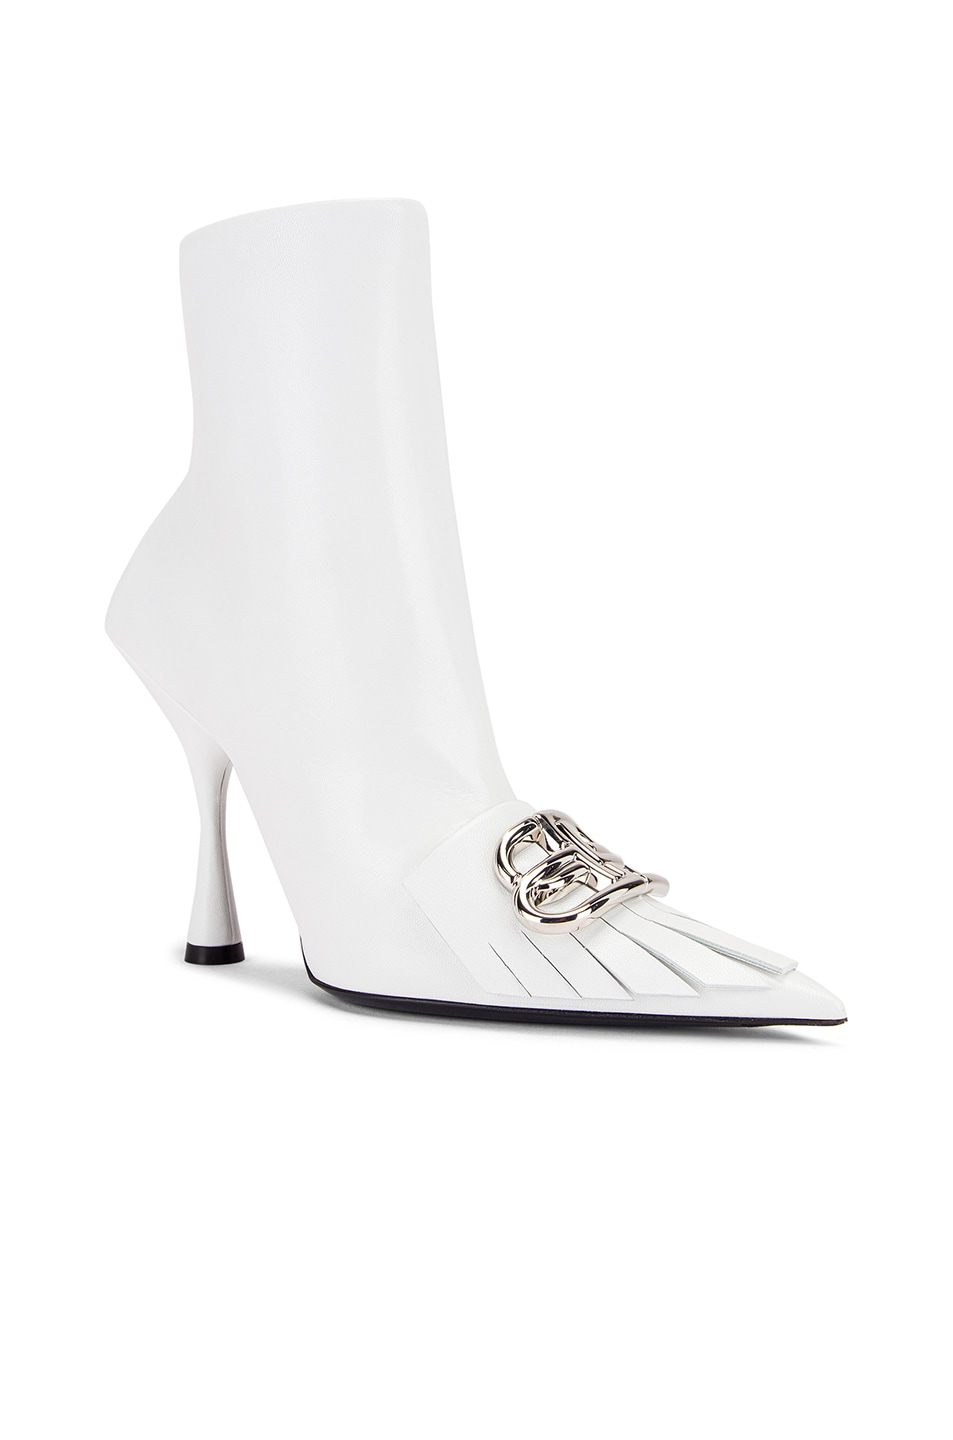 Image 3 of Balenciaga Fringe Knife Booties in White & Silver